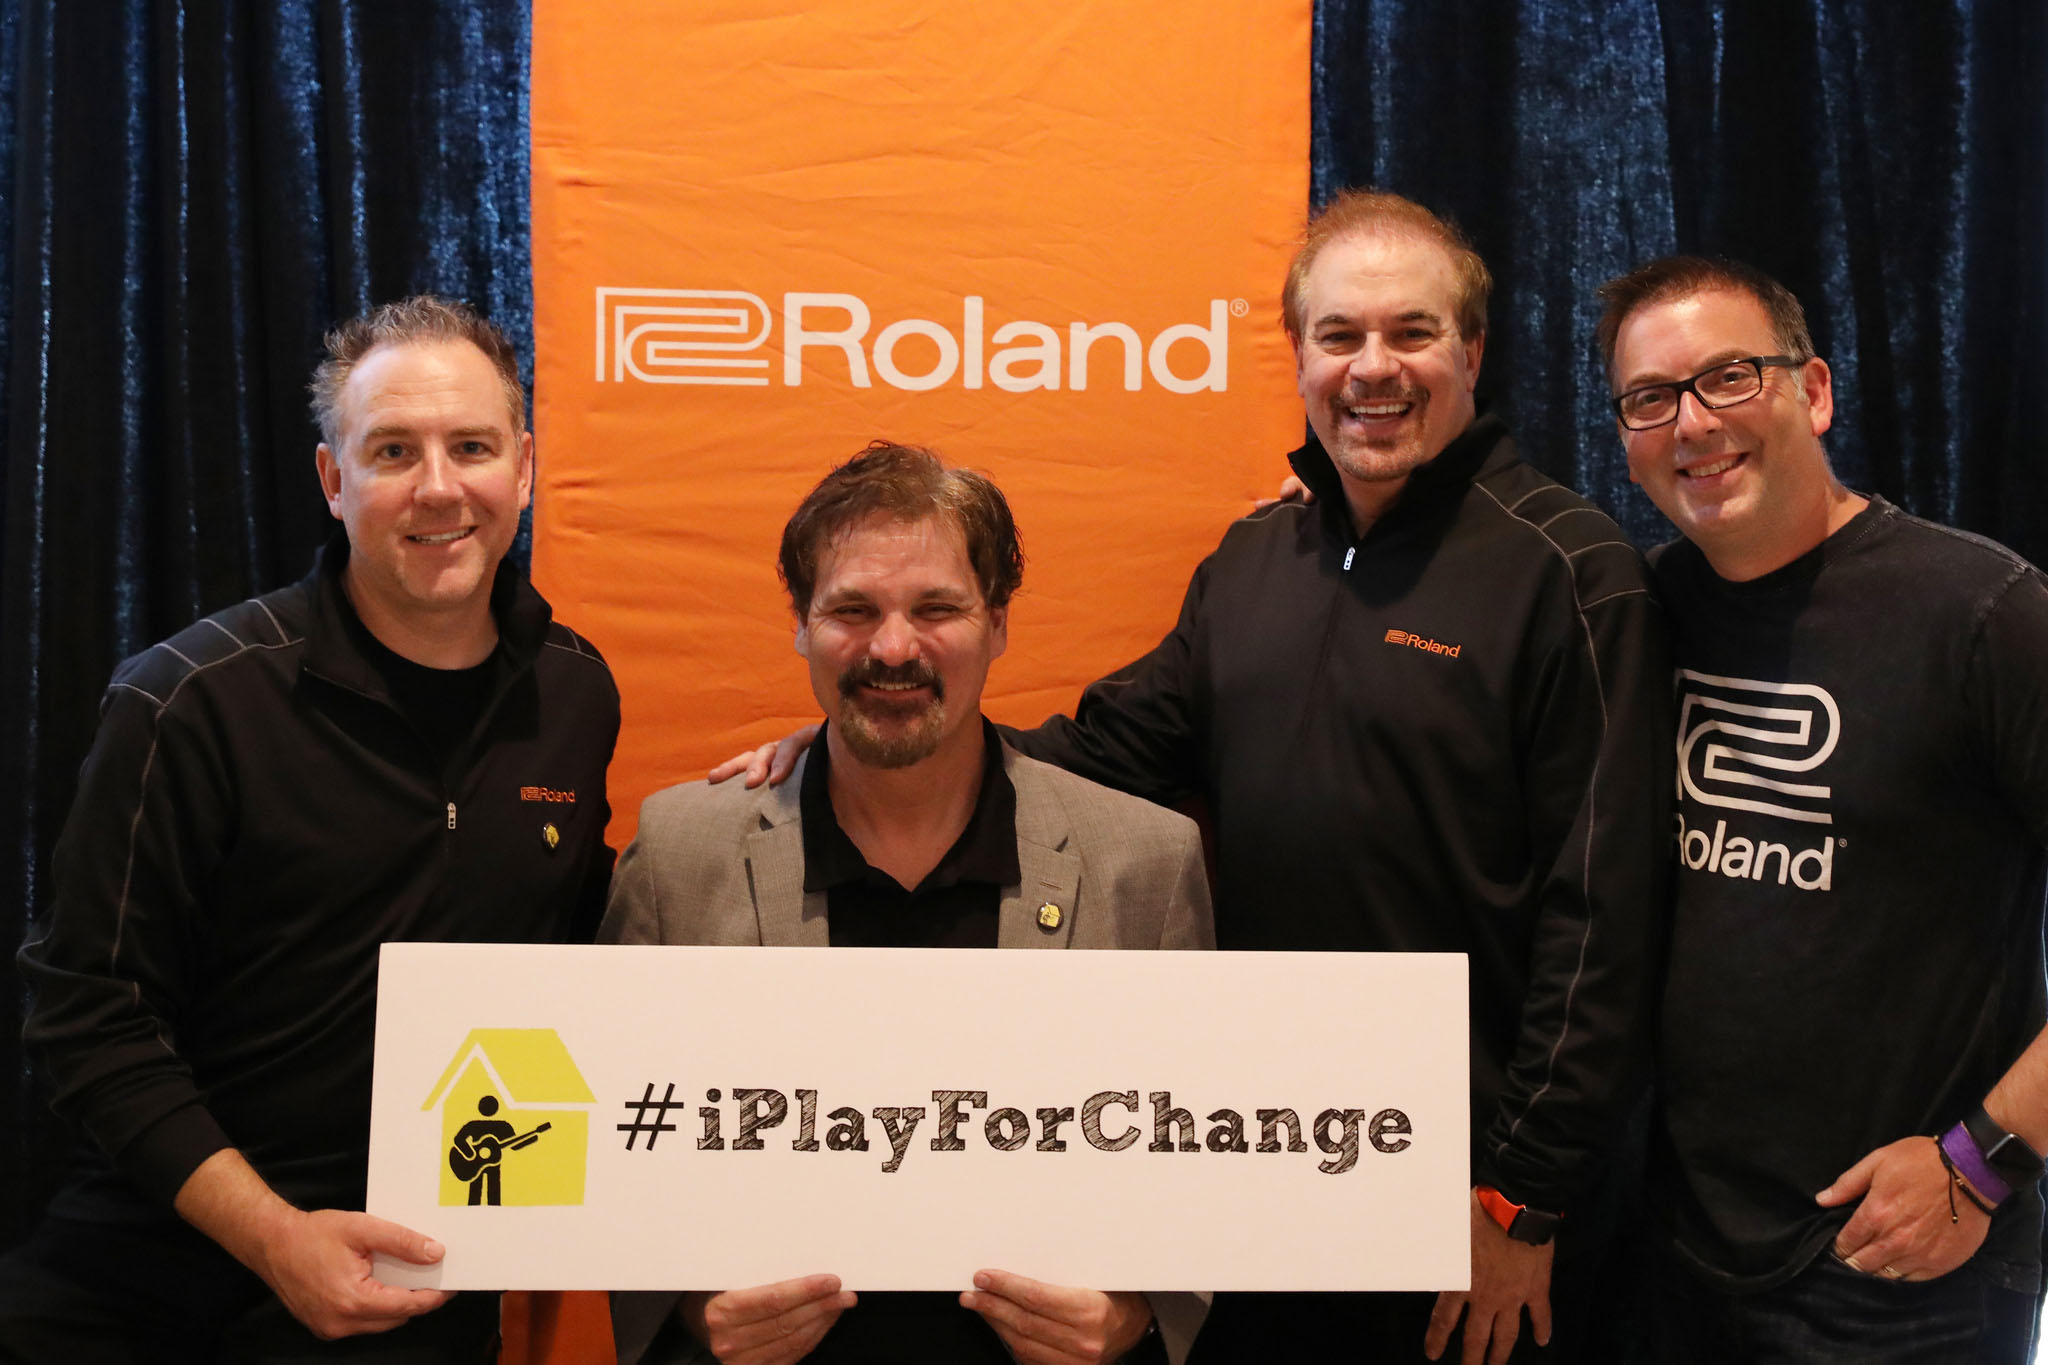 http://www.clynemedia.com/Roland/PlayingForChangePartnership/Roland_Playing_for_Change_Group.jpg